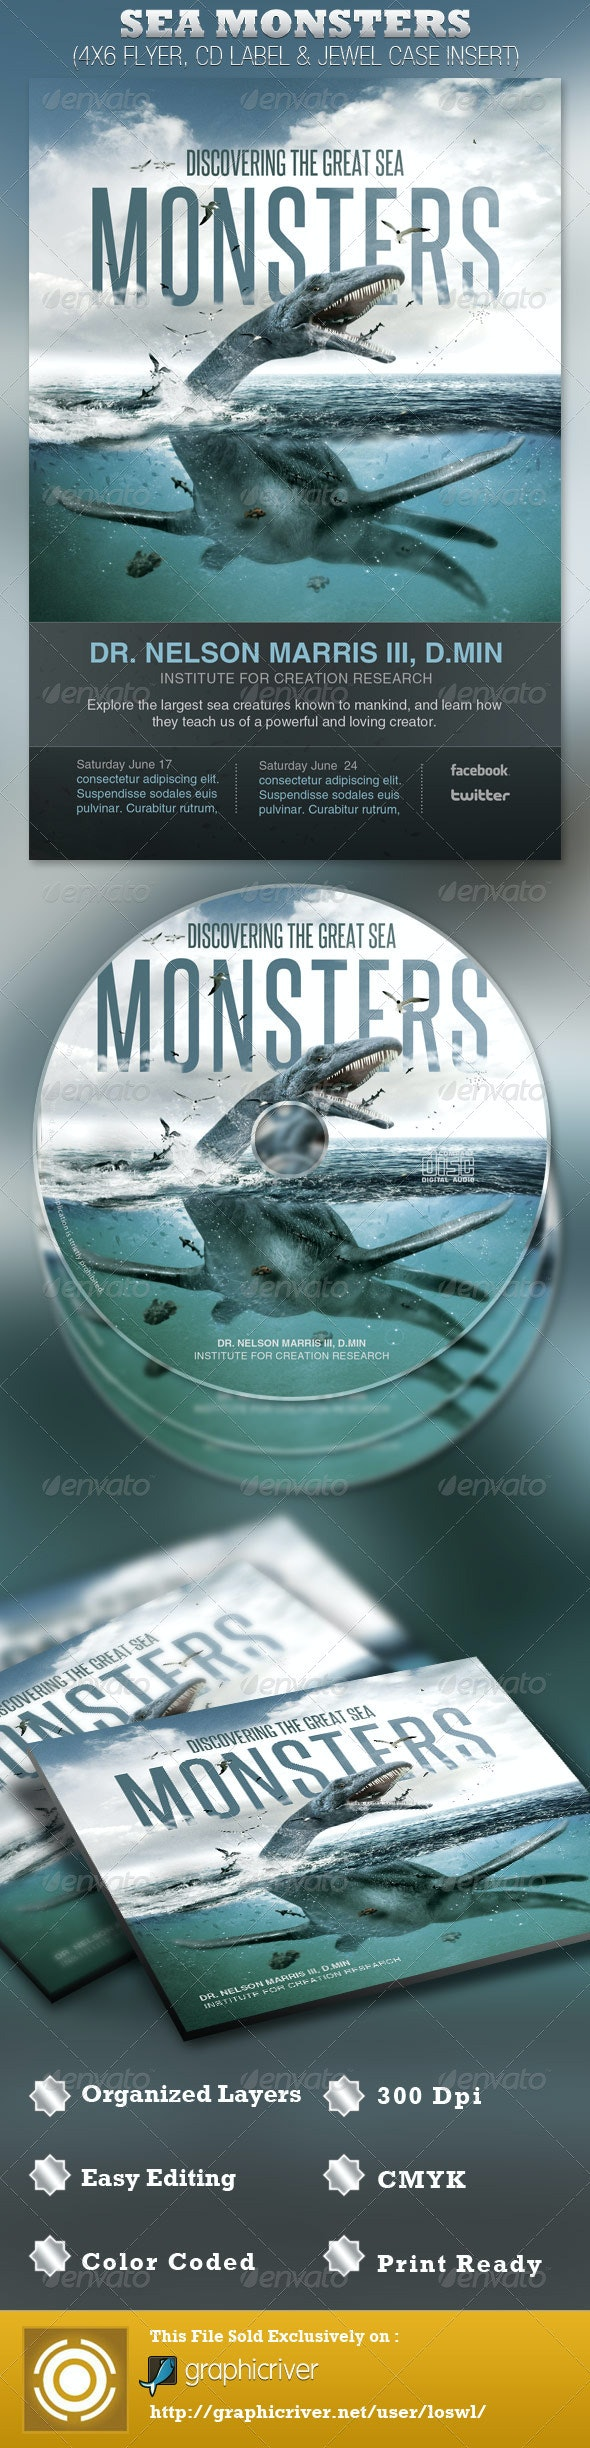 Discover Great Sea Monsters Church Flyer and CD - Church Flyers